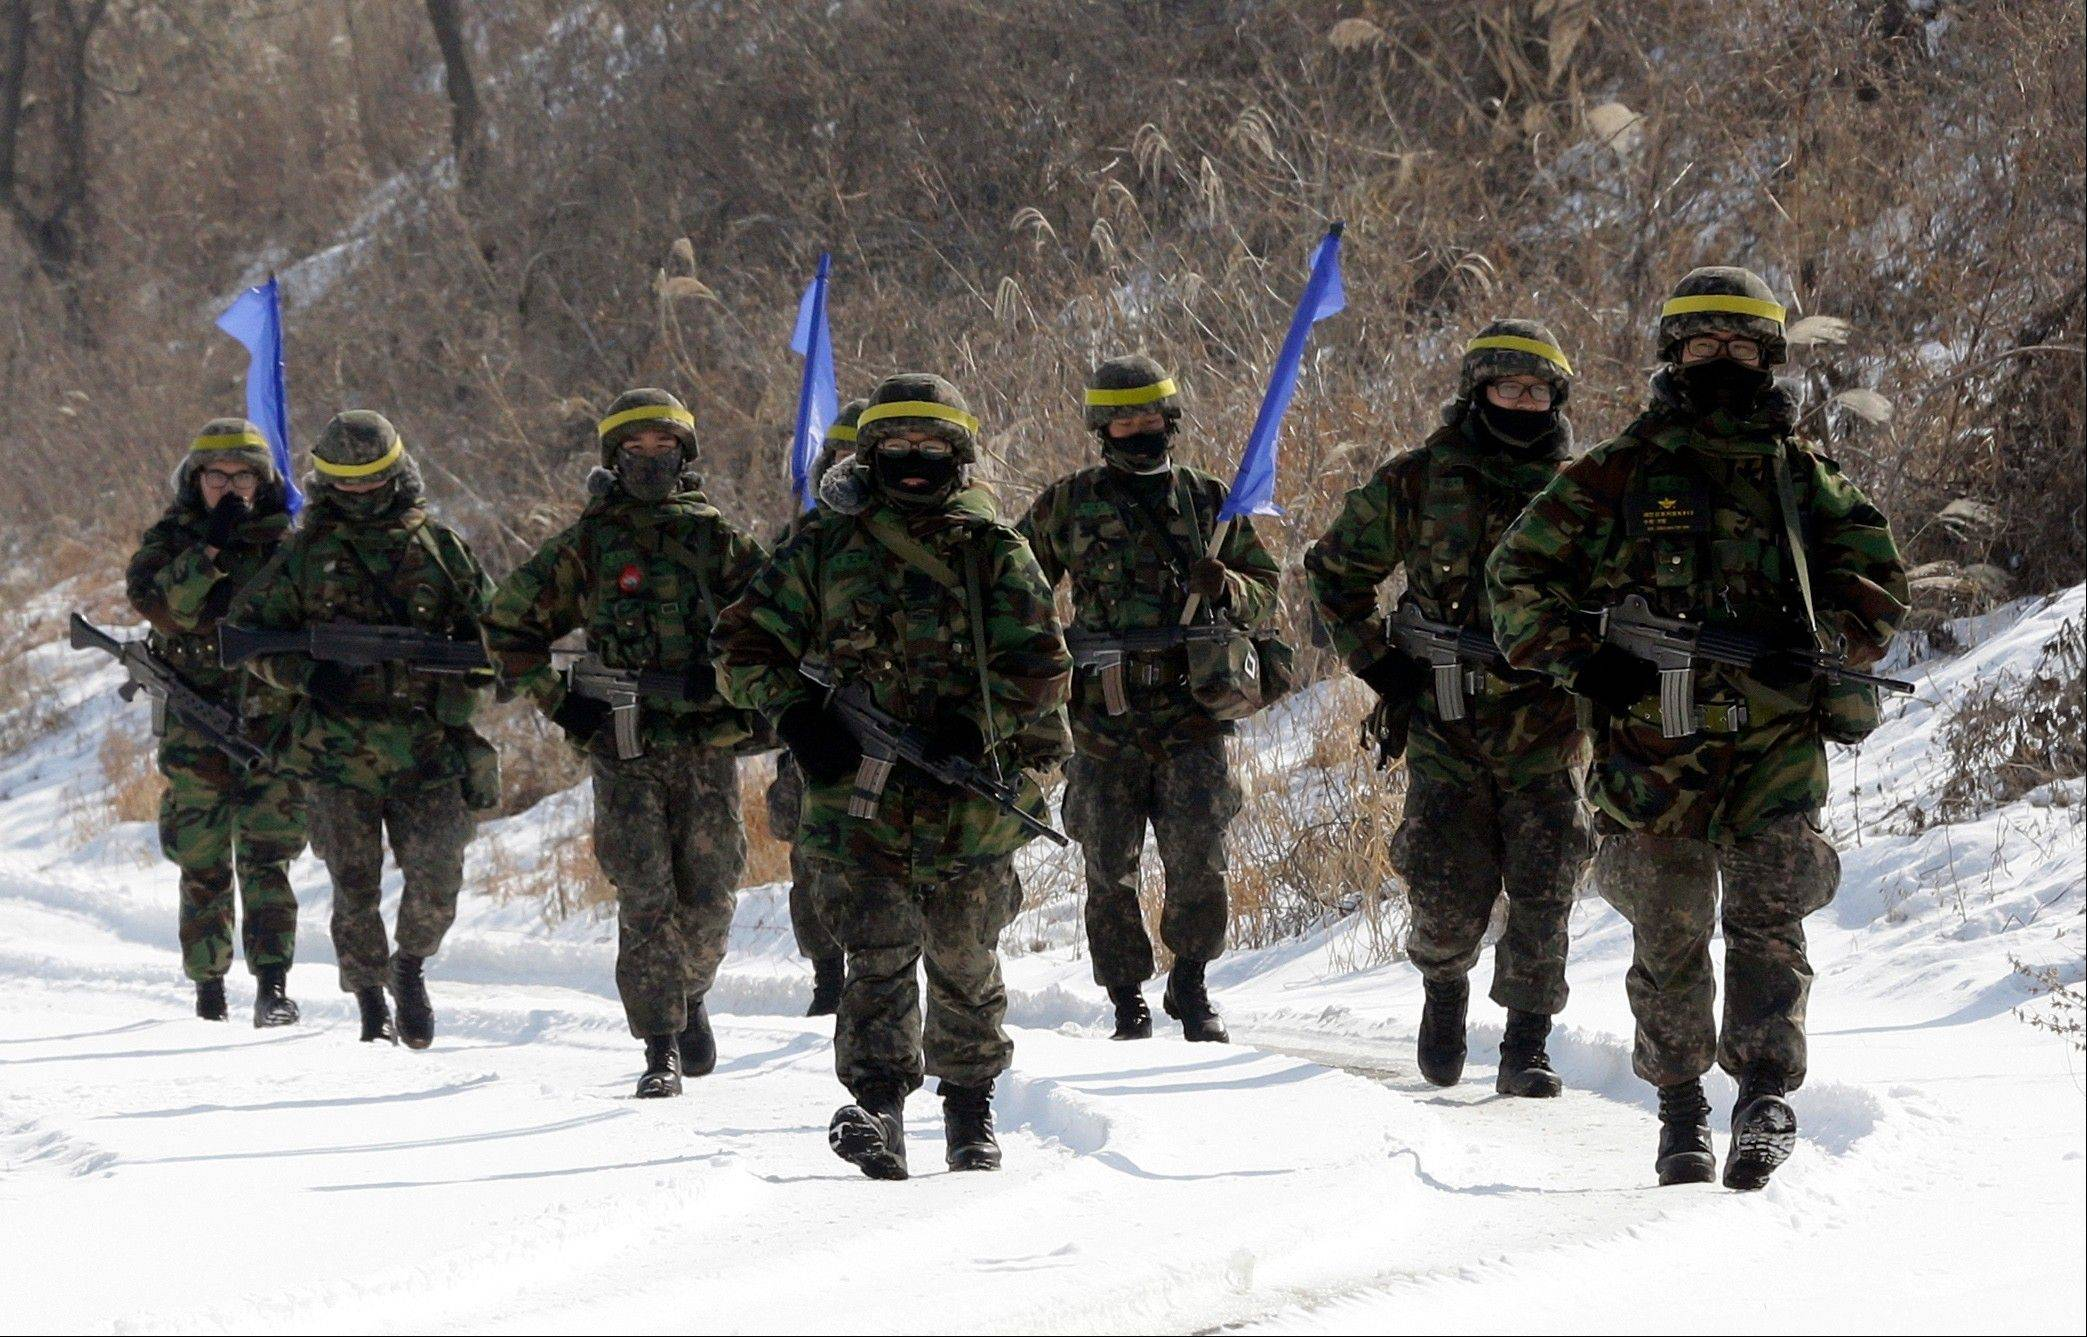 South Korean army soldiers walk on a snow covered road during an exercise near the border village of Panmunjom, which has separated the two Koreas since the Korean War, in Paju, north of Seoul, South Korea, Wednesday, Feb. 13, 2013. A day after North Korea defied U.N. warnings with a nuclear test, Pyongyang's neighbors turned Wednesday to the business of bolstering their military preparations and sending out scientists to determine whether the detonation was as successful as the North claimed.